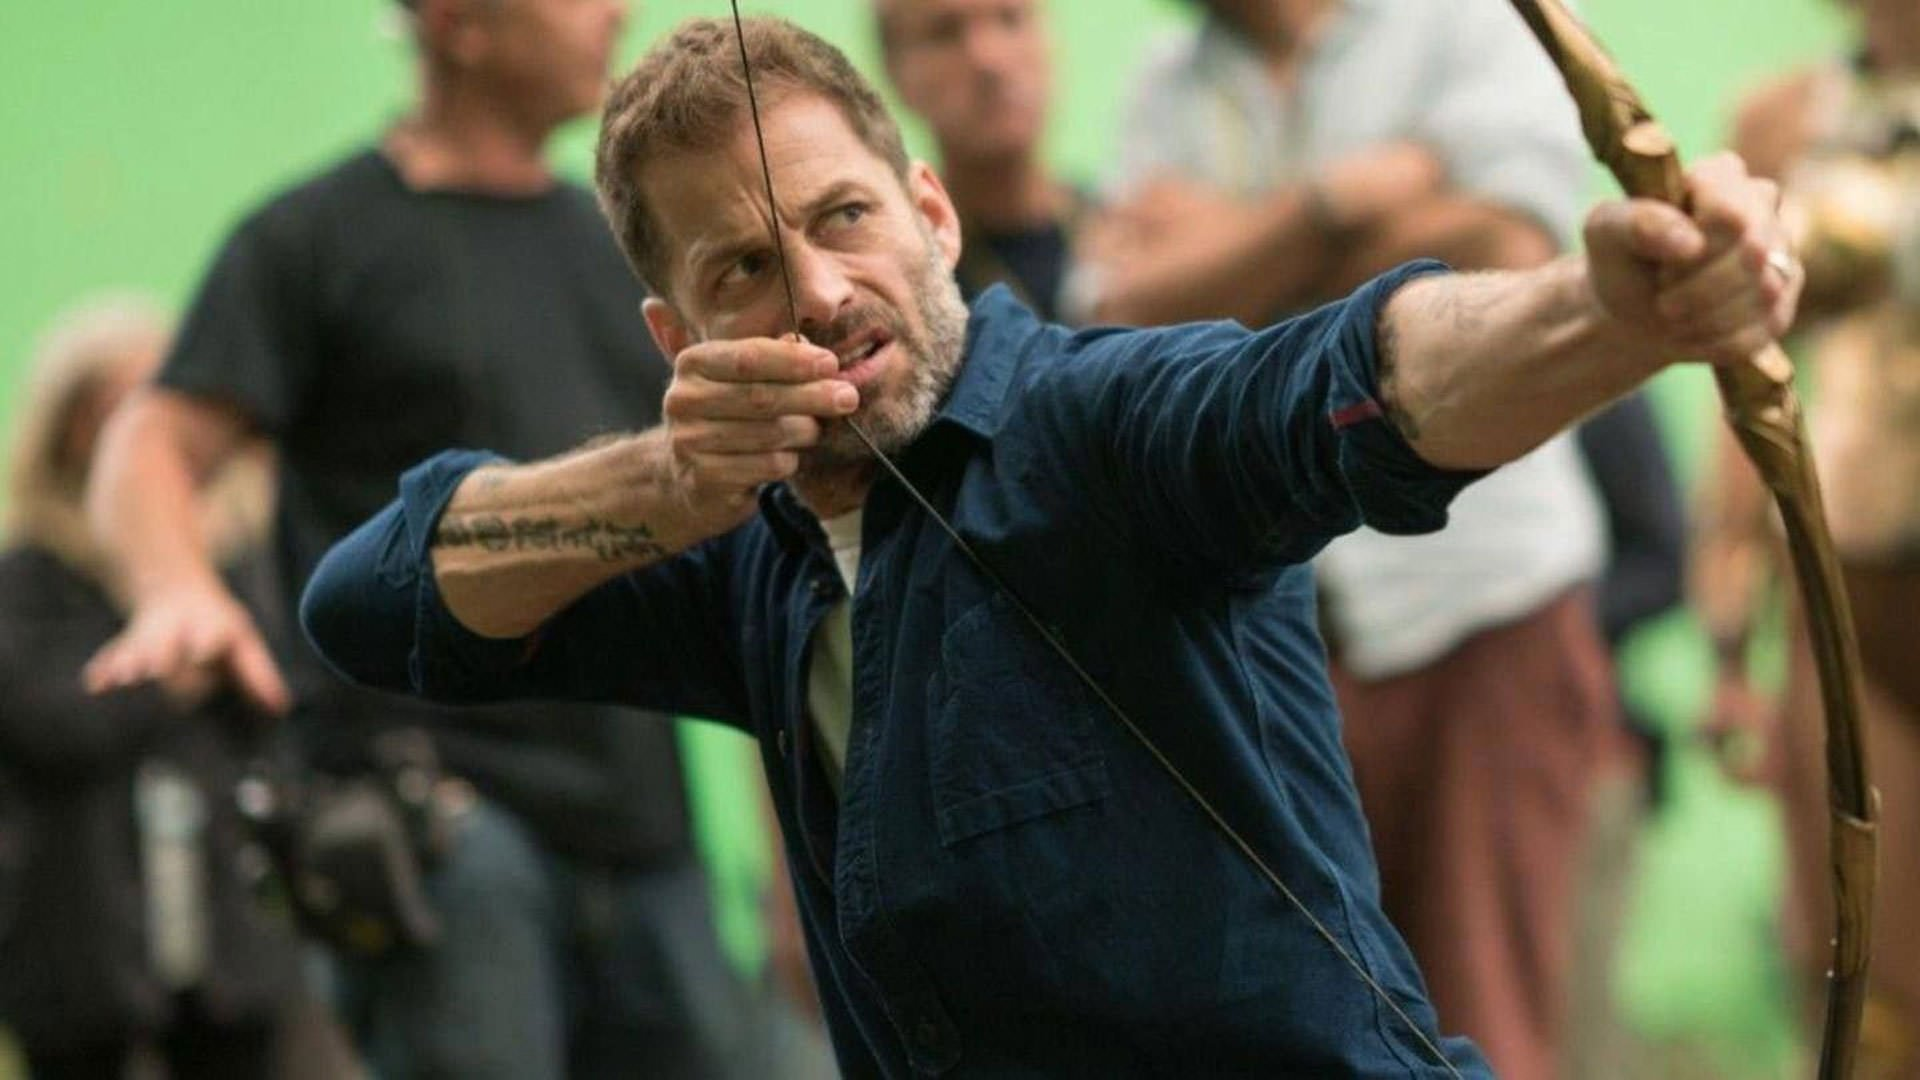 Zack Snyder is pulling a bow behind the scenes of the film